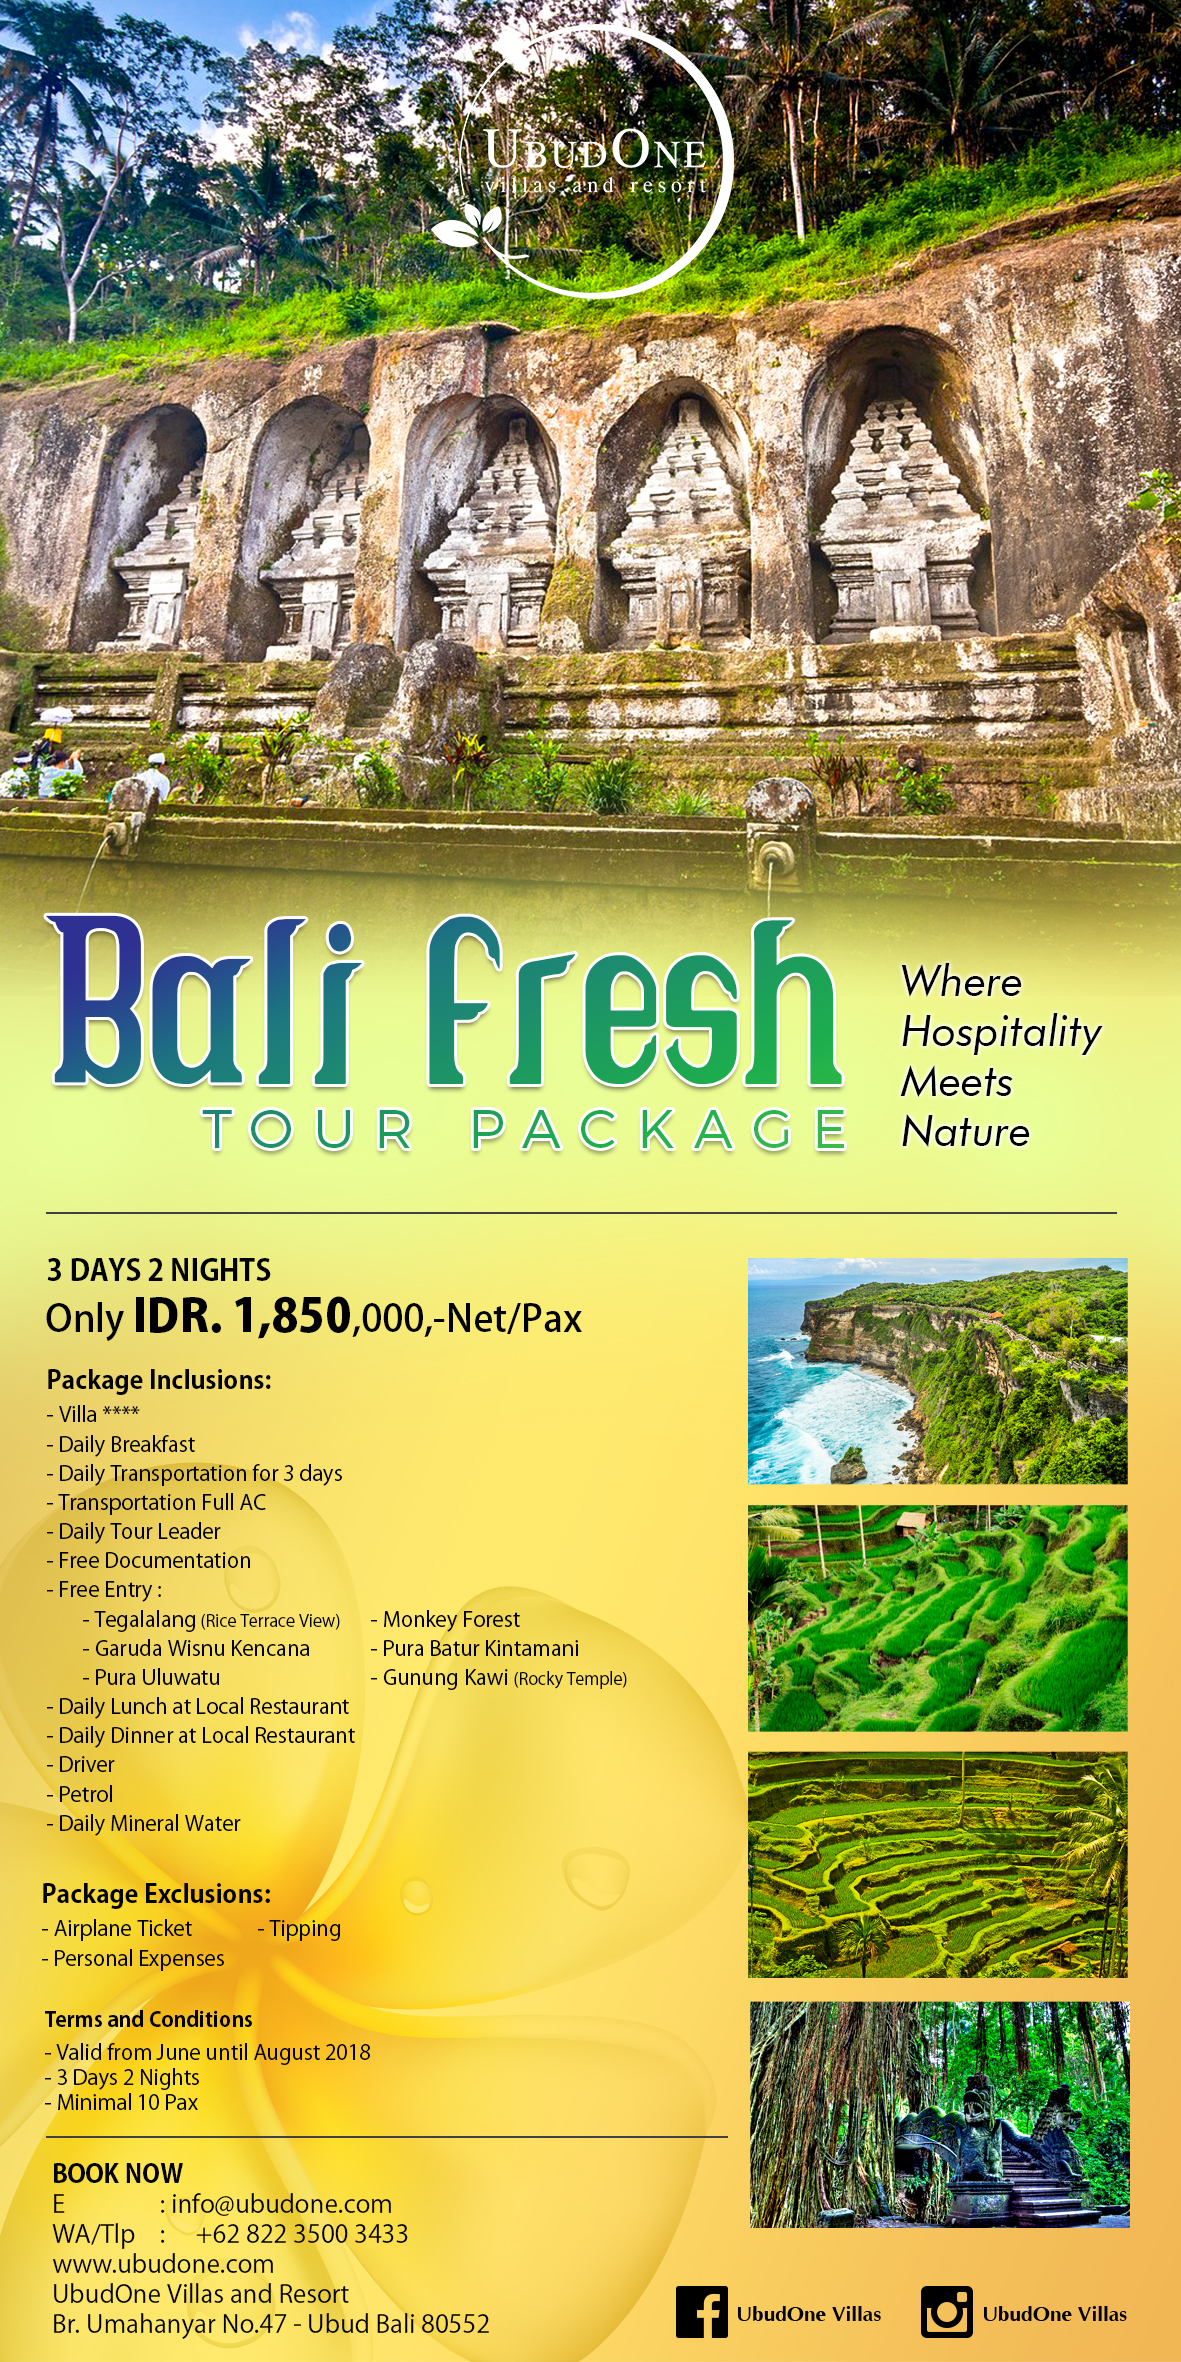 BALI FRESH TOUR PACKAGE